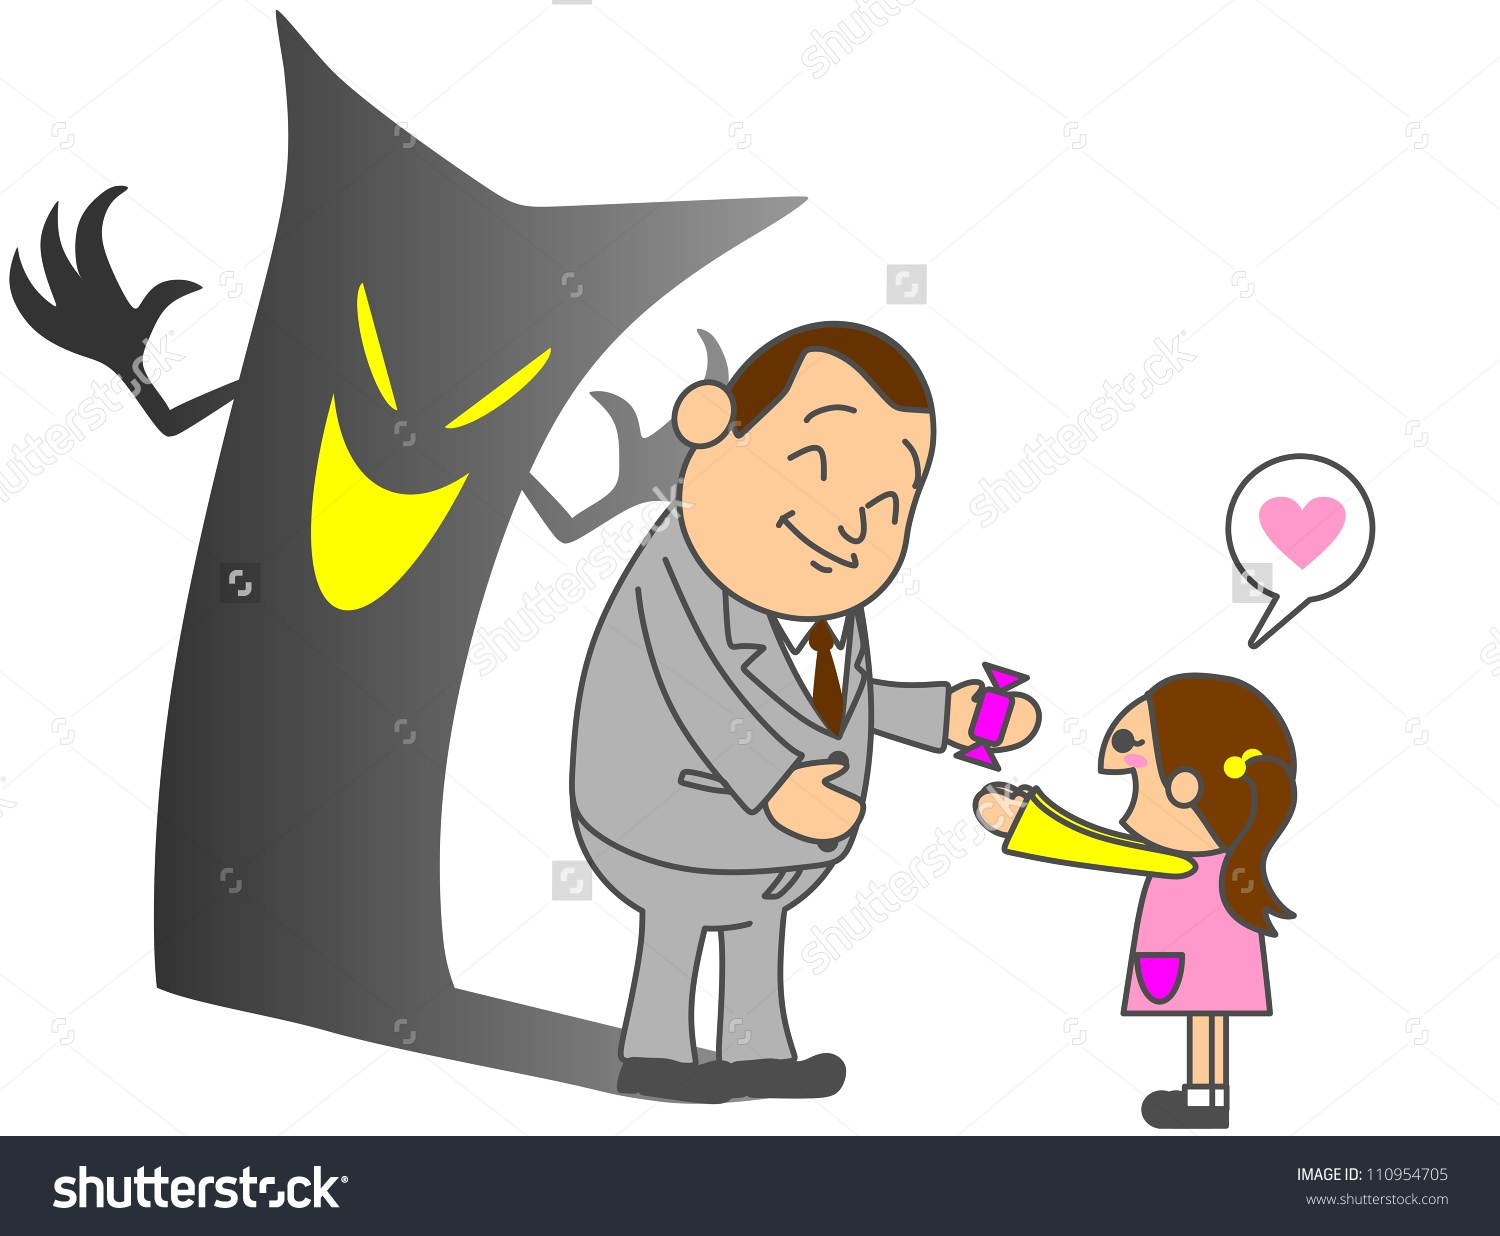 Child abduction clipart.